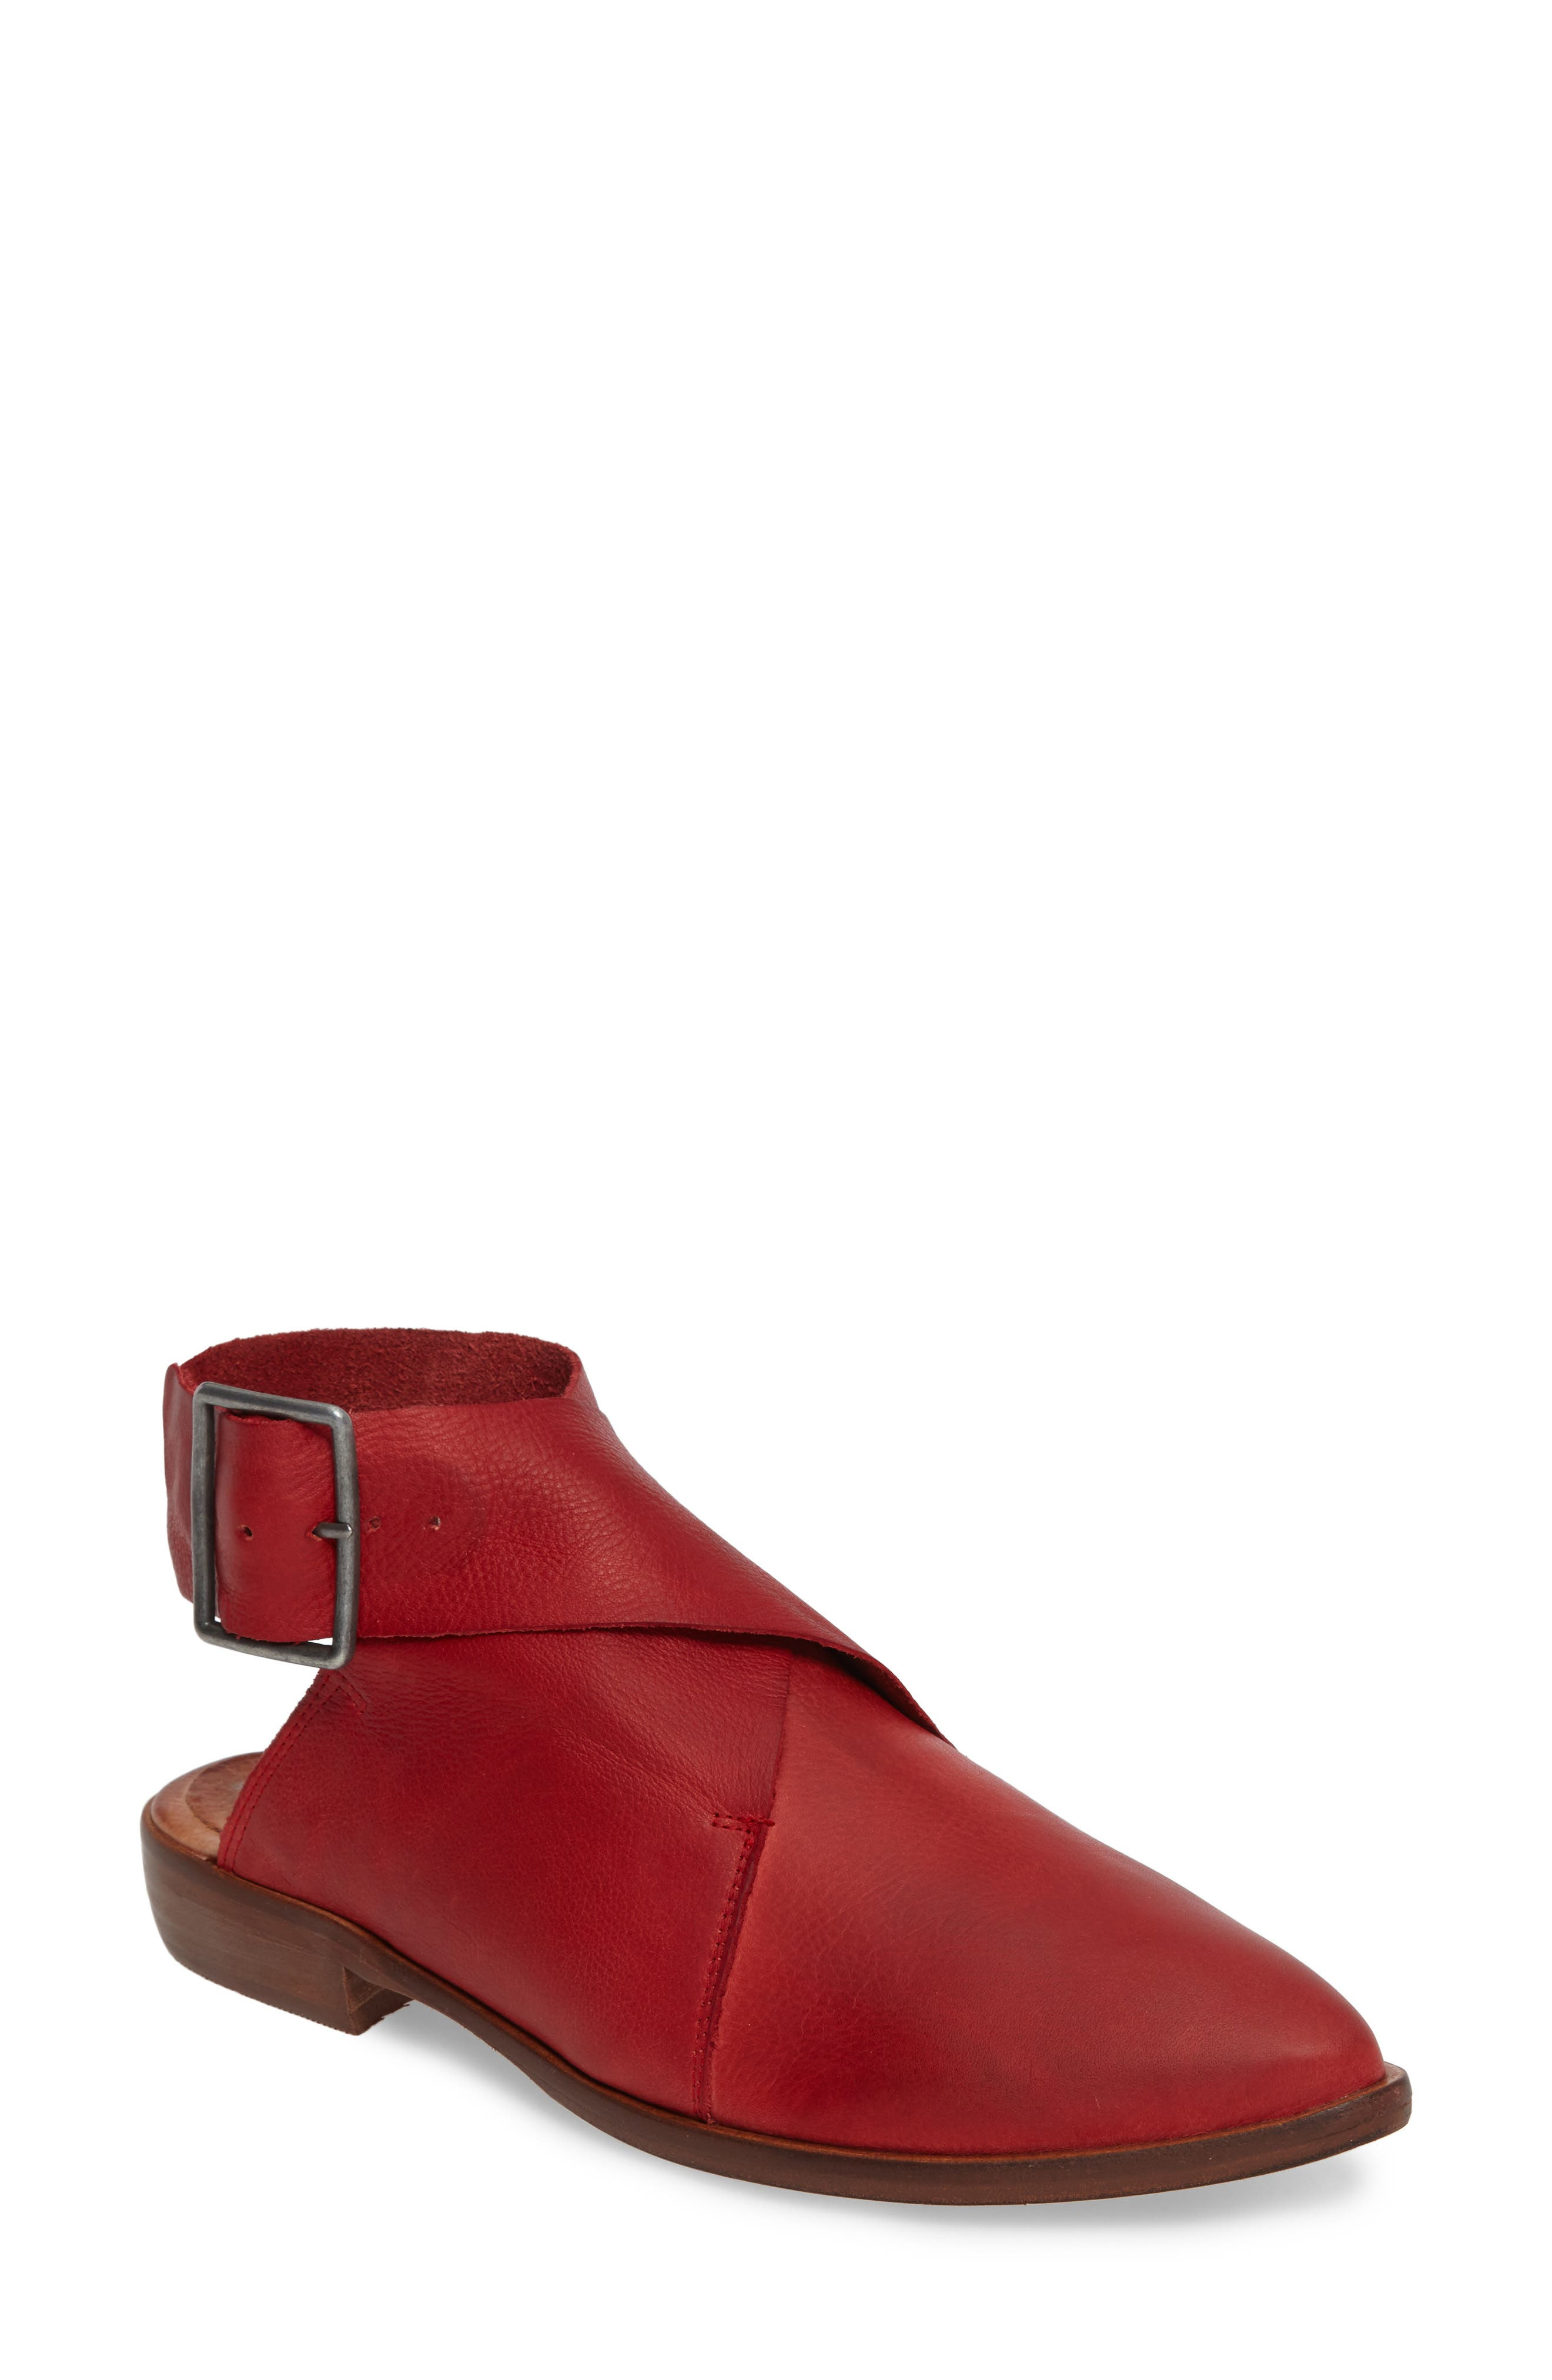 Bryce Buckle Wrap Flat,                         Main,                         color, Red